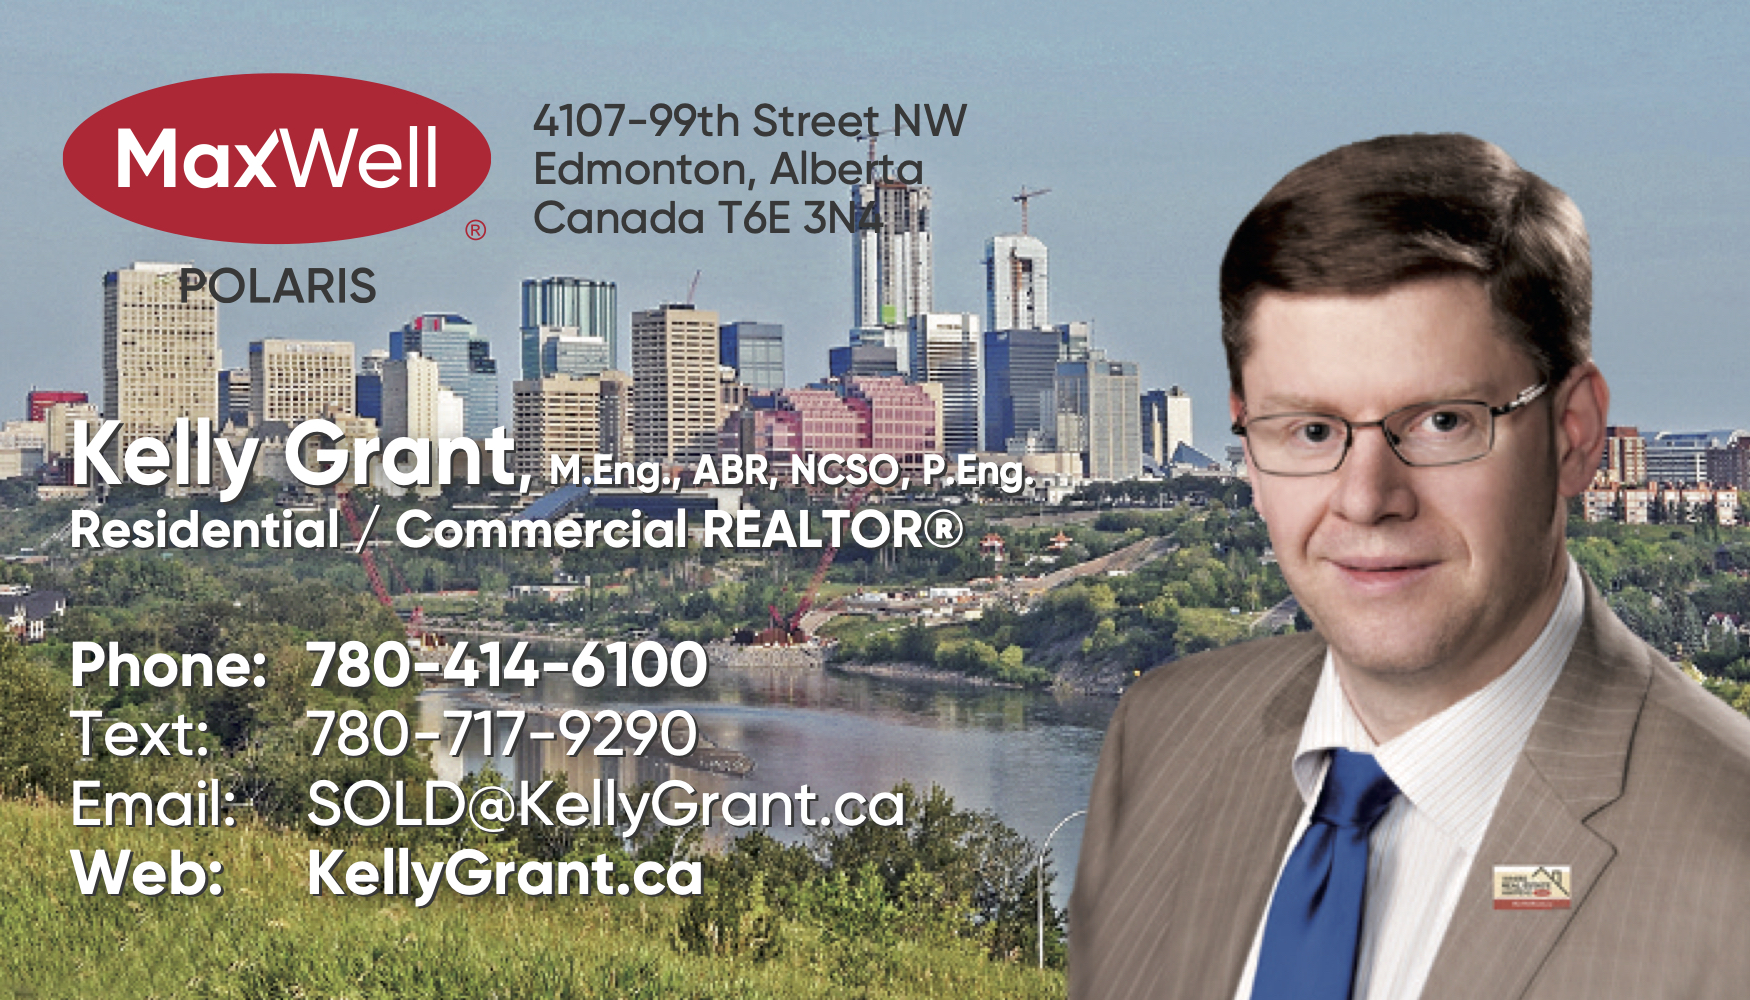 Kelly Grant MaxWell Business Card